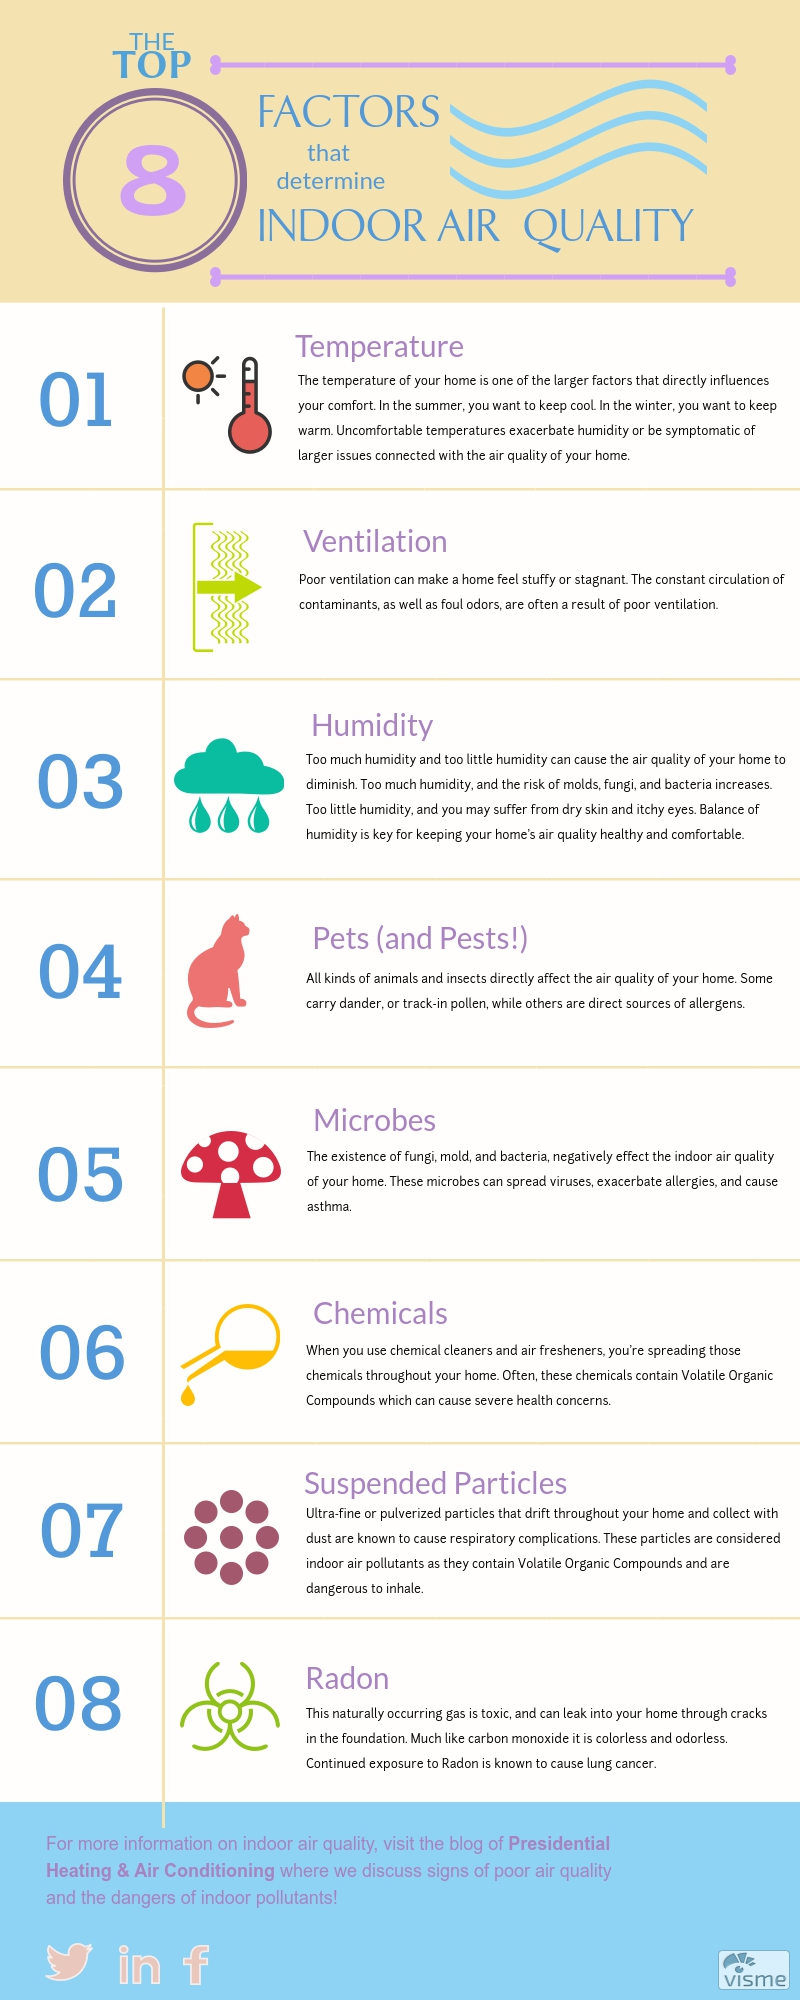 The Top 8 Factors that determine Indoor Air Quality infographic with text below